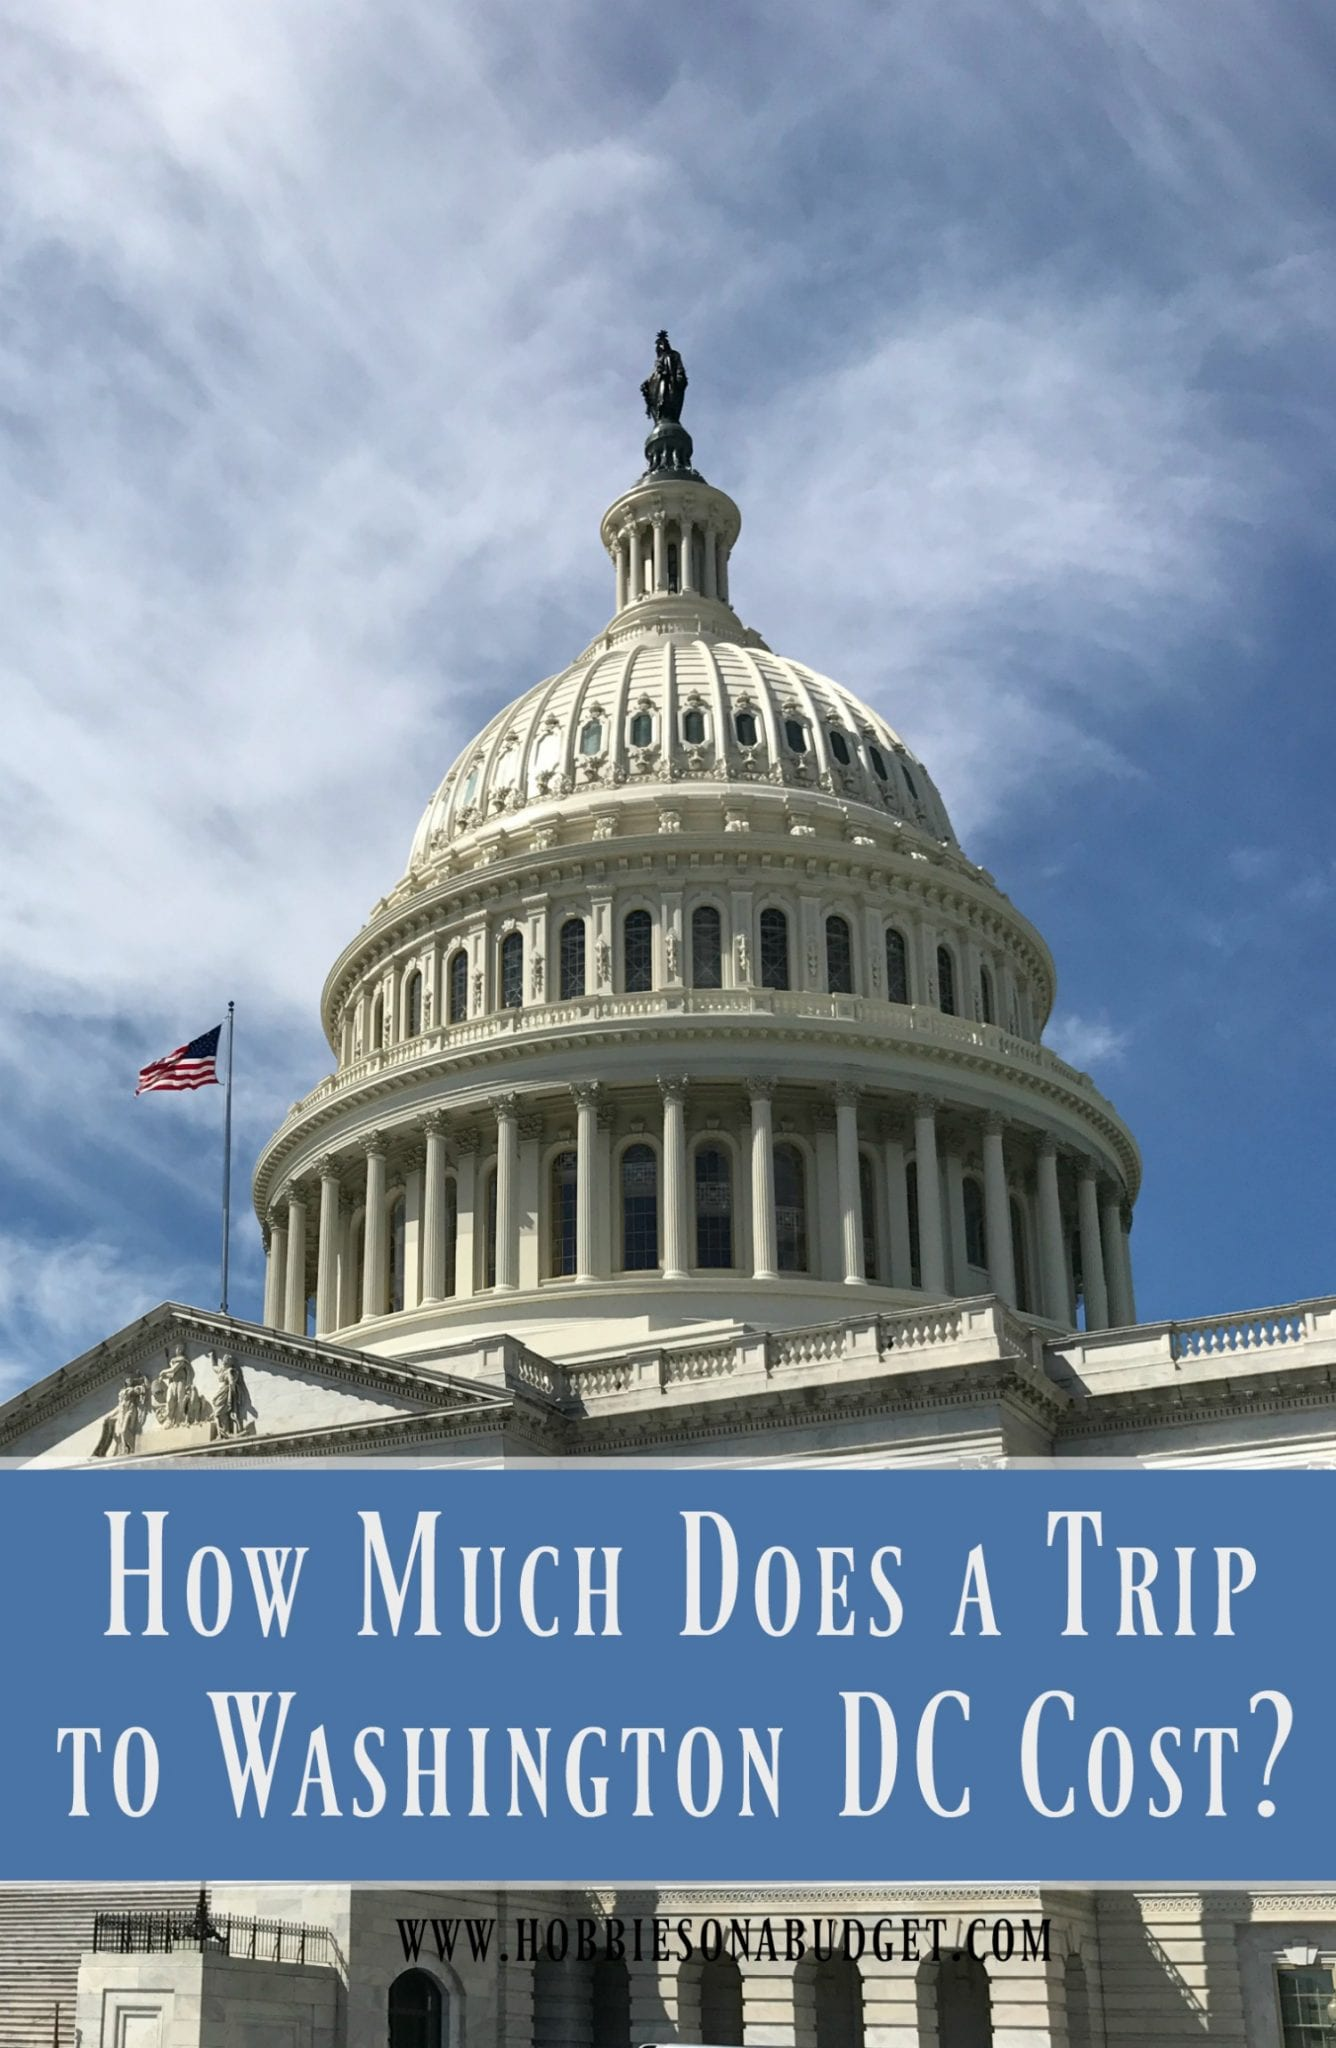 How Much Does a Trip to Washington DC Cost